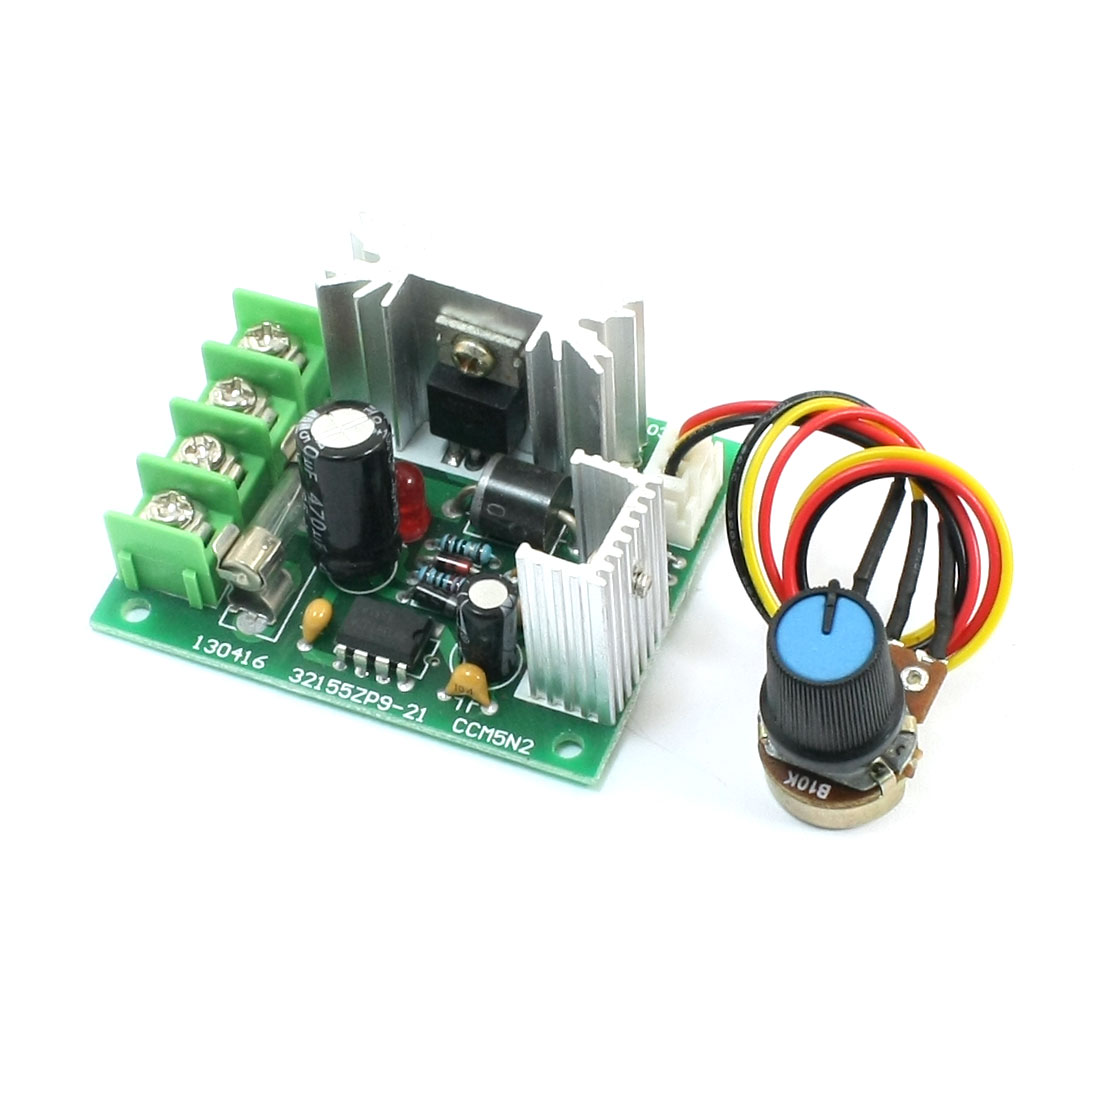 Rotary Potentiometer Adjustable Pulse Width Modulation PWM Motor Speed Controller Governor Switch DC 10-32V 120W